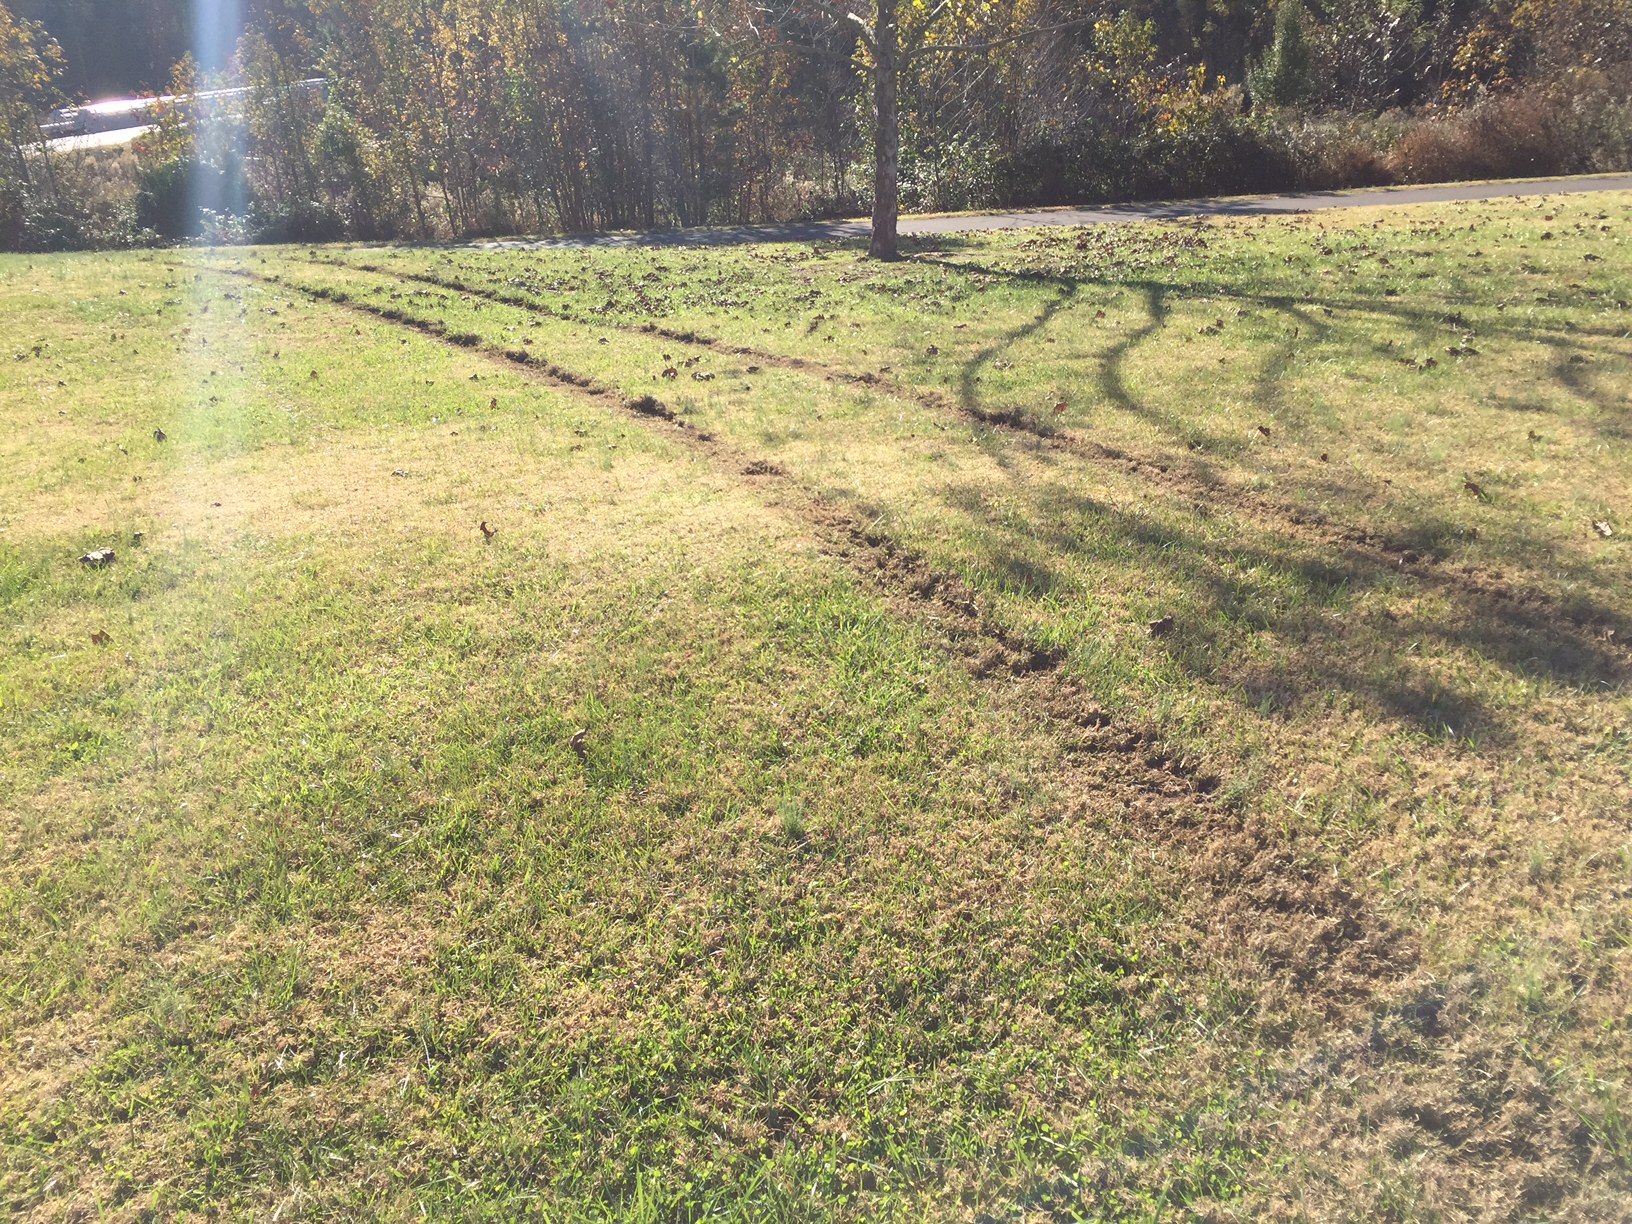 "<div class=""meta image-caption""><div class=""origin-logo origin-image none""><span>none</span></div><span class=""caption-text"">Damage at E. Carroll Joyner Park (image courtesy Town of Wake Forest)</span></div>"